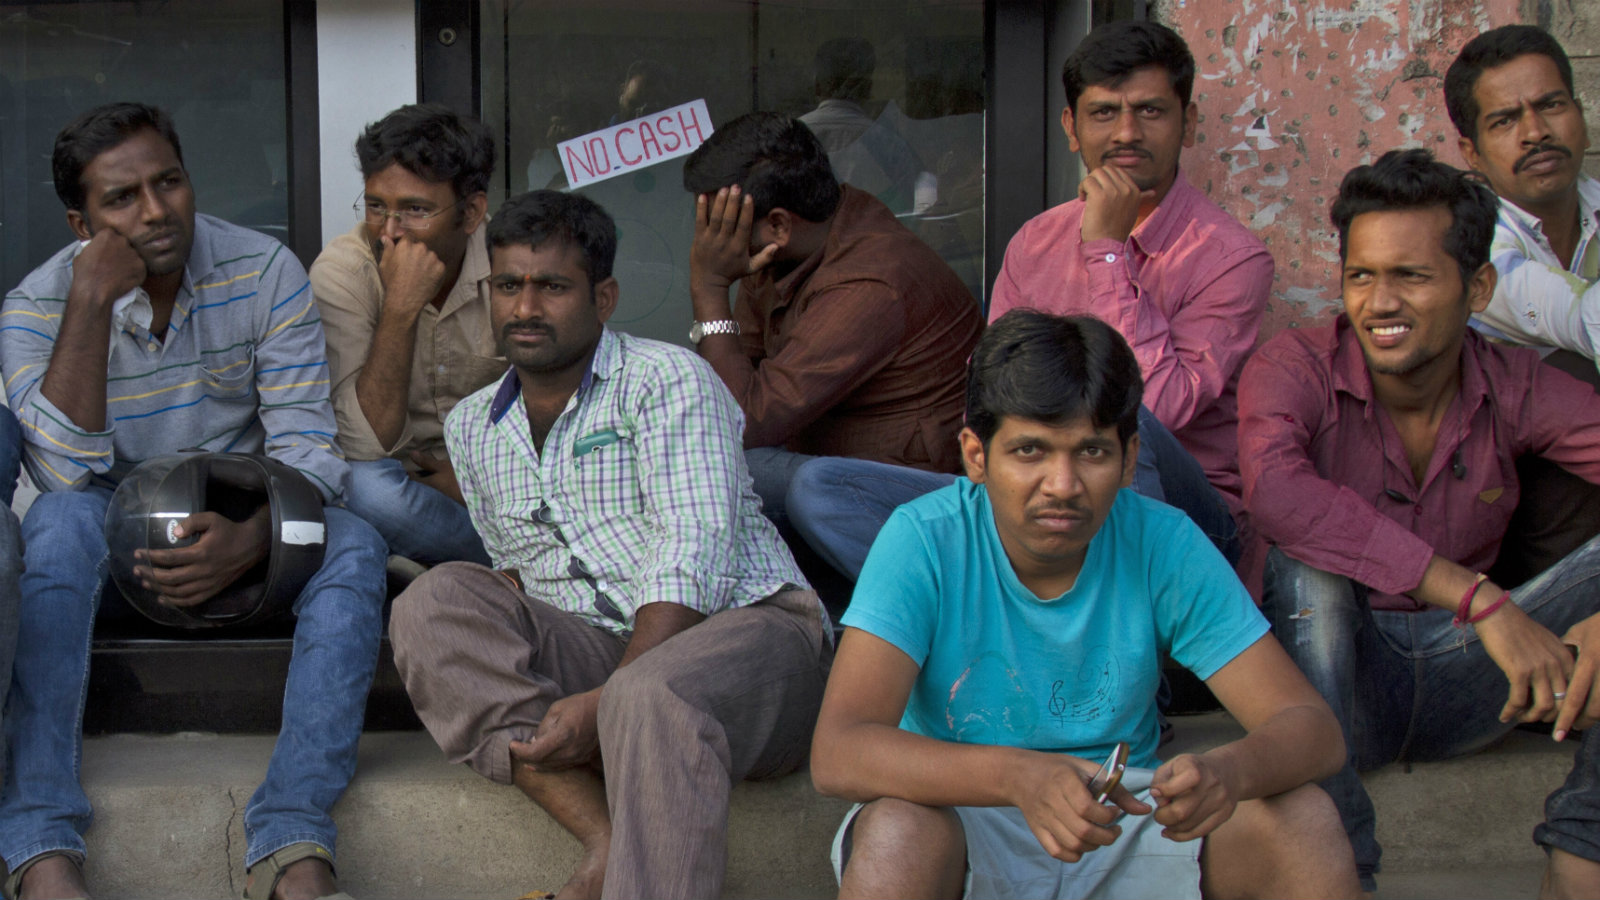 Indians wait outside a closed ATM to withdraw money in Hyderabad, India, Friday, Dec. 2, 2016. Indian Prime Minister Narendra Modi, in his Nov. 8 televised address, announced demonetization of India's 500 and 1,000-rupee notes, which made up 86 percent of the country's currency. People have been forced to stand in long queues to change banned notes and also to take out new currency from their accounts after severe limitations were imposed on withdrawal from banks and ATMs